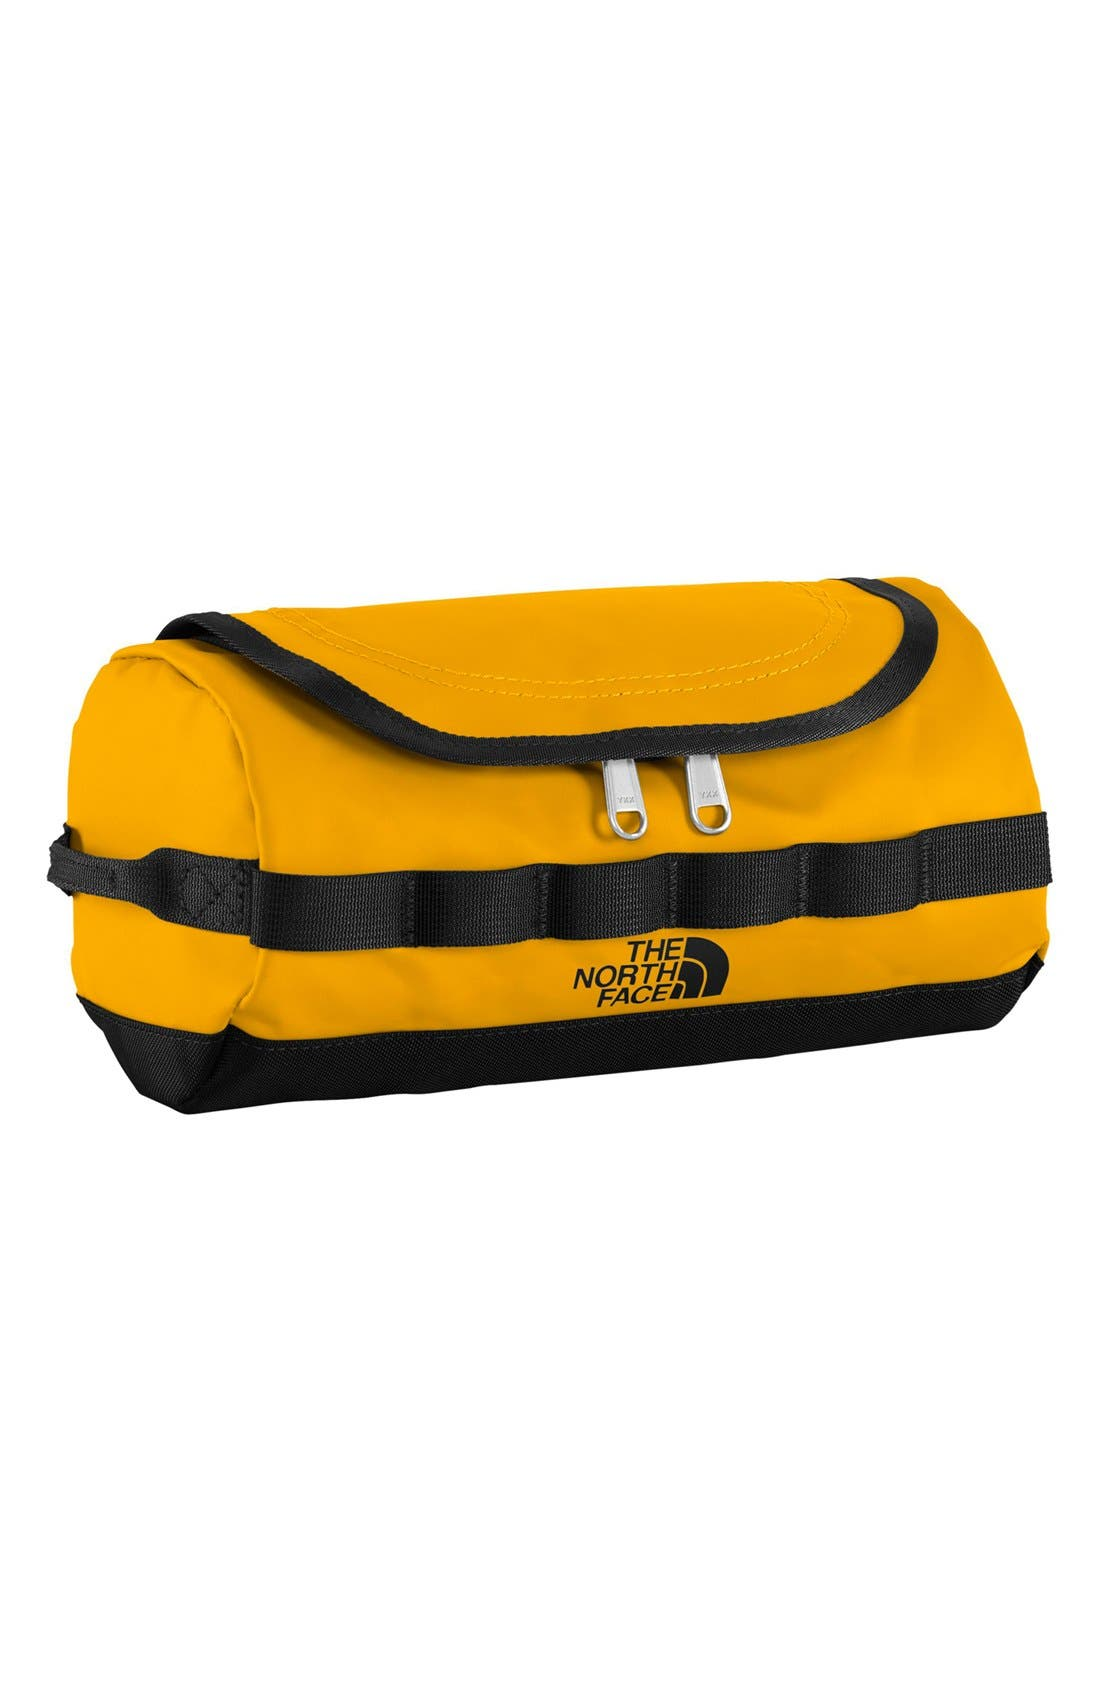 THE NORTH FACE, Travel Canister, Main thumbnail 1, color, SUMMIT GOLD/ TNF BLACK